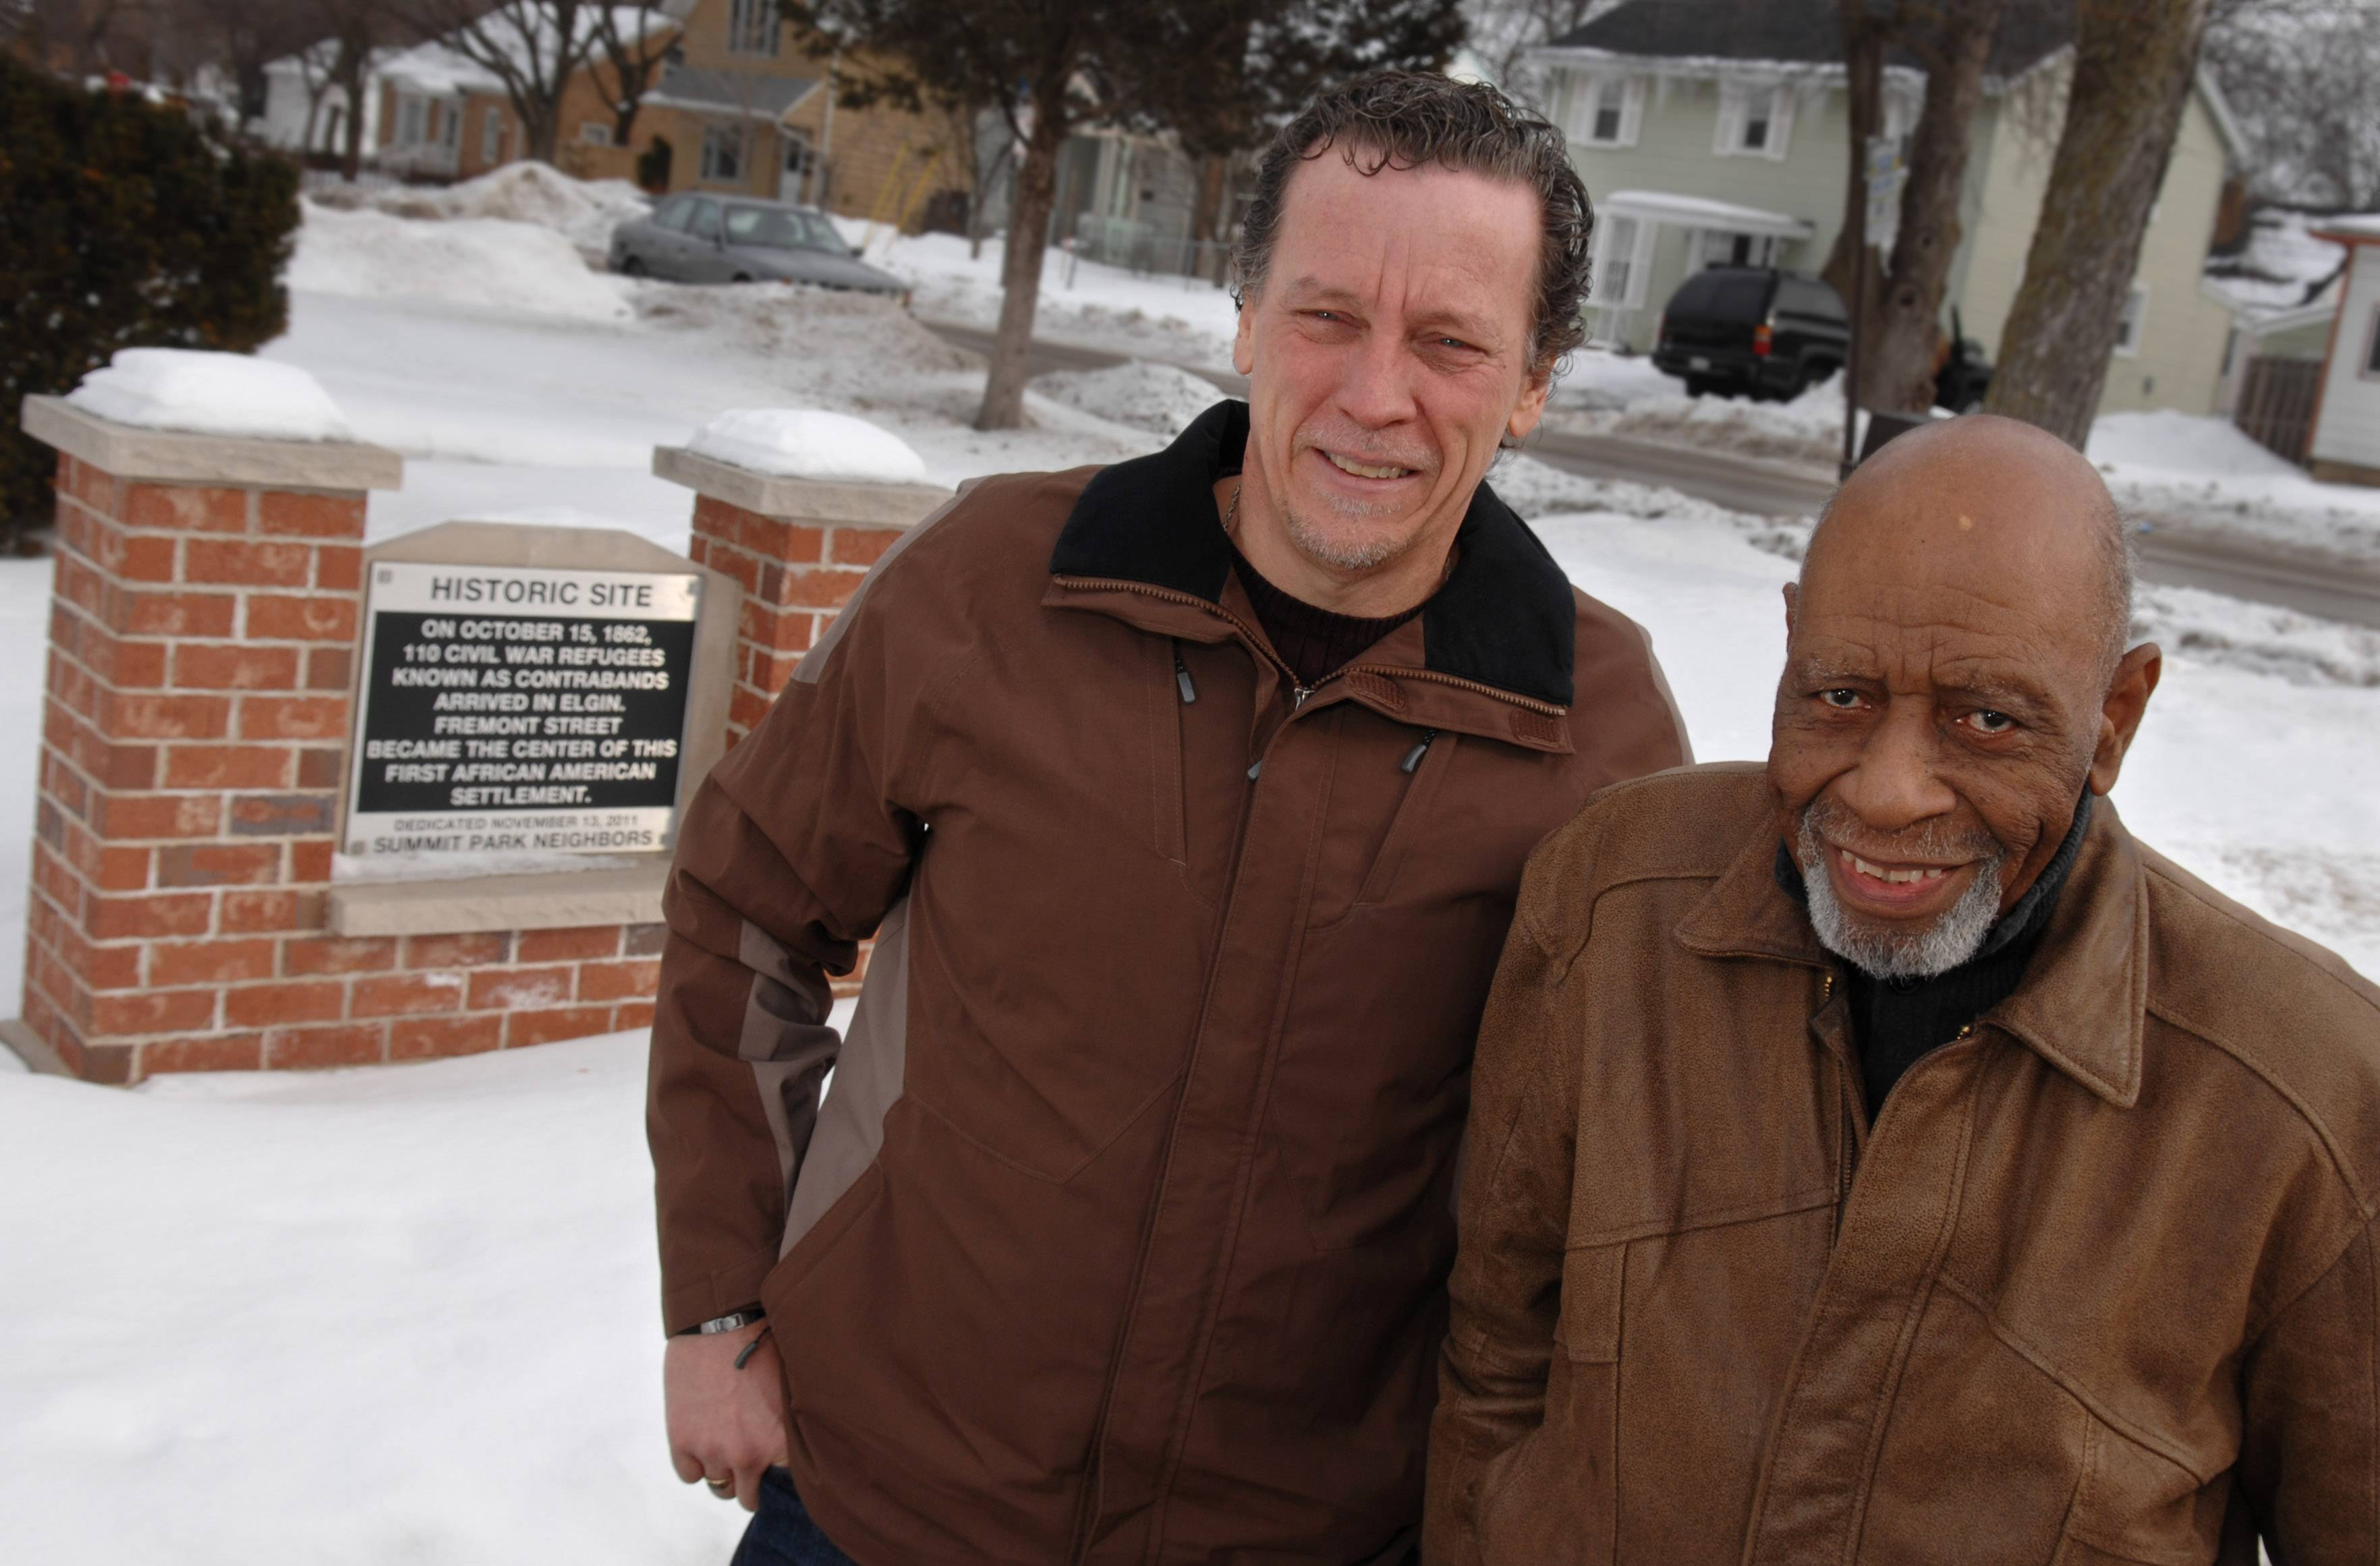 Phil Broxham, president of Elgin-based Grindstone Video Productions, left, is working with longtime Elgin resident Ernie Broadnax on a documentary about the history of blacks in Elgin.